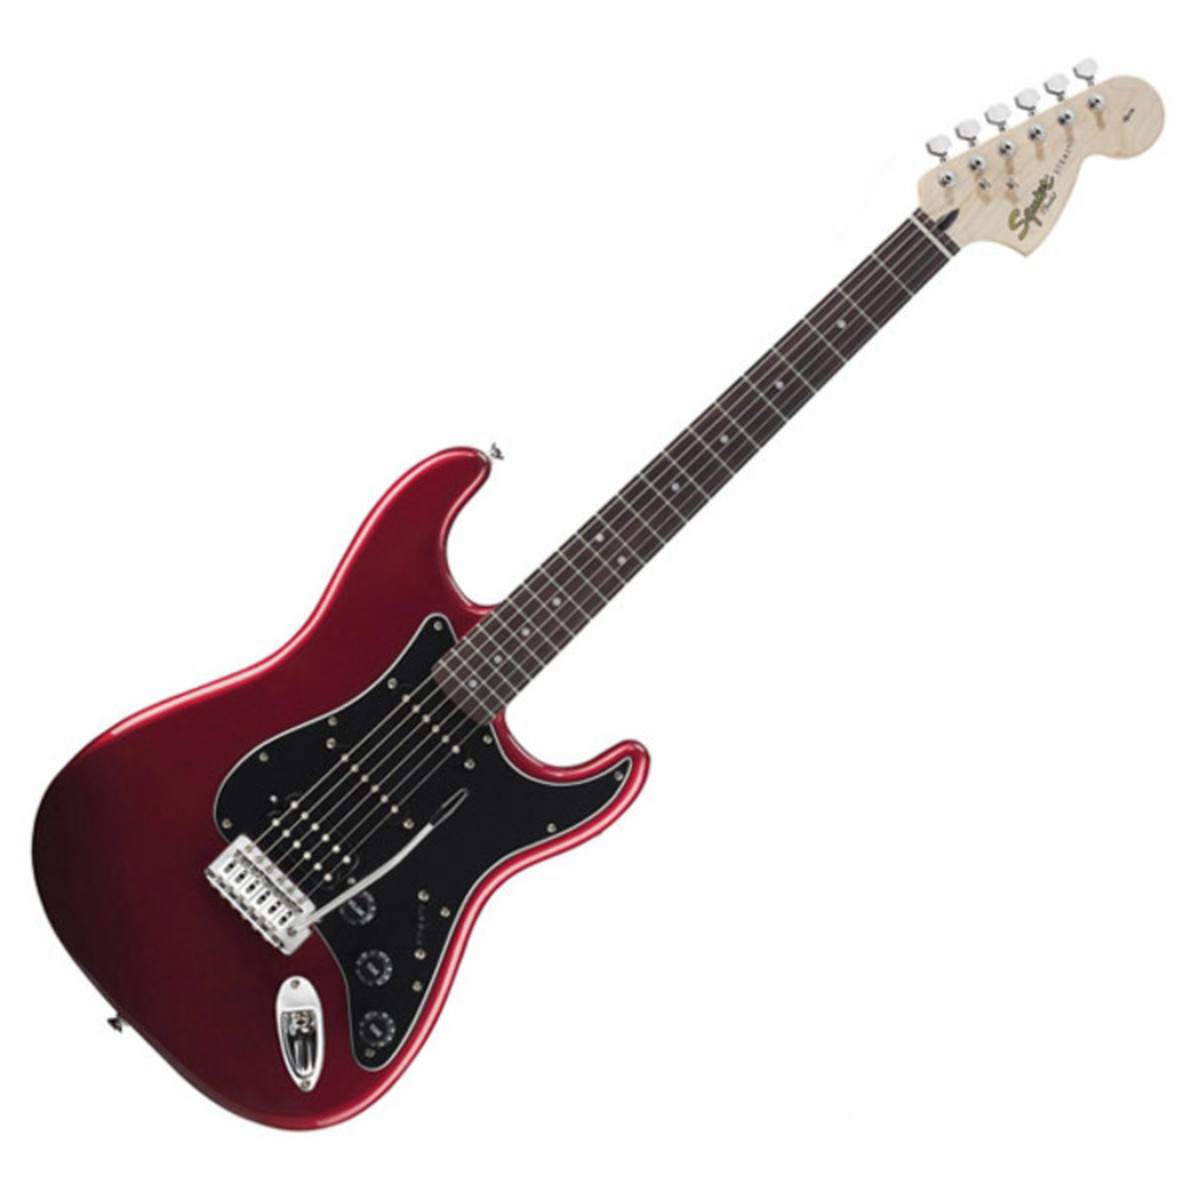 Squier By Fender Stratocaster Pack Hss 15w Amp Candy